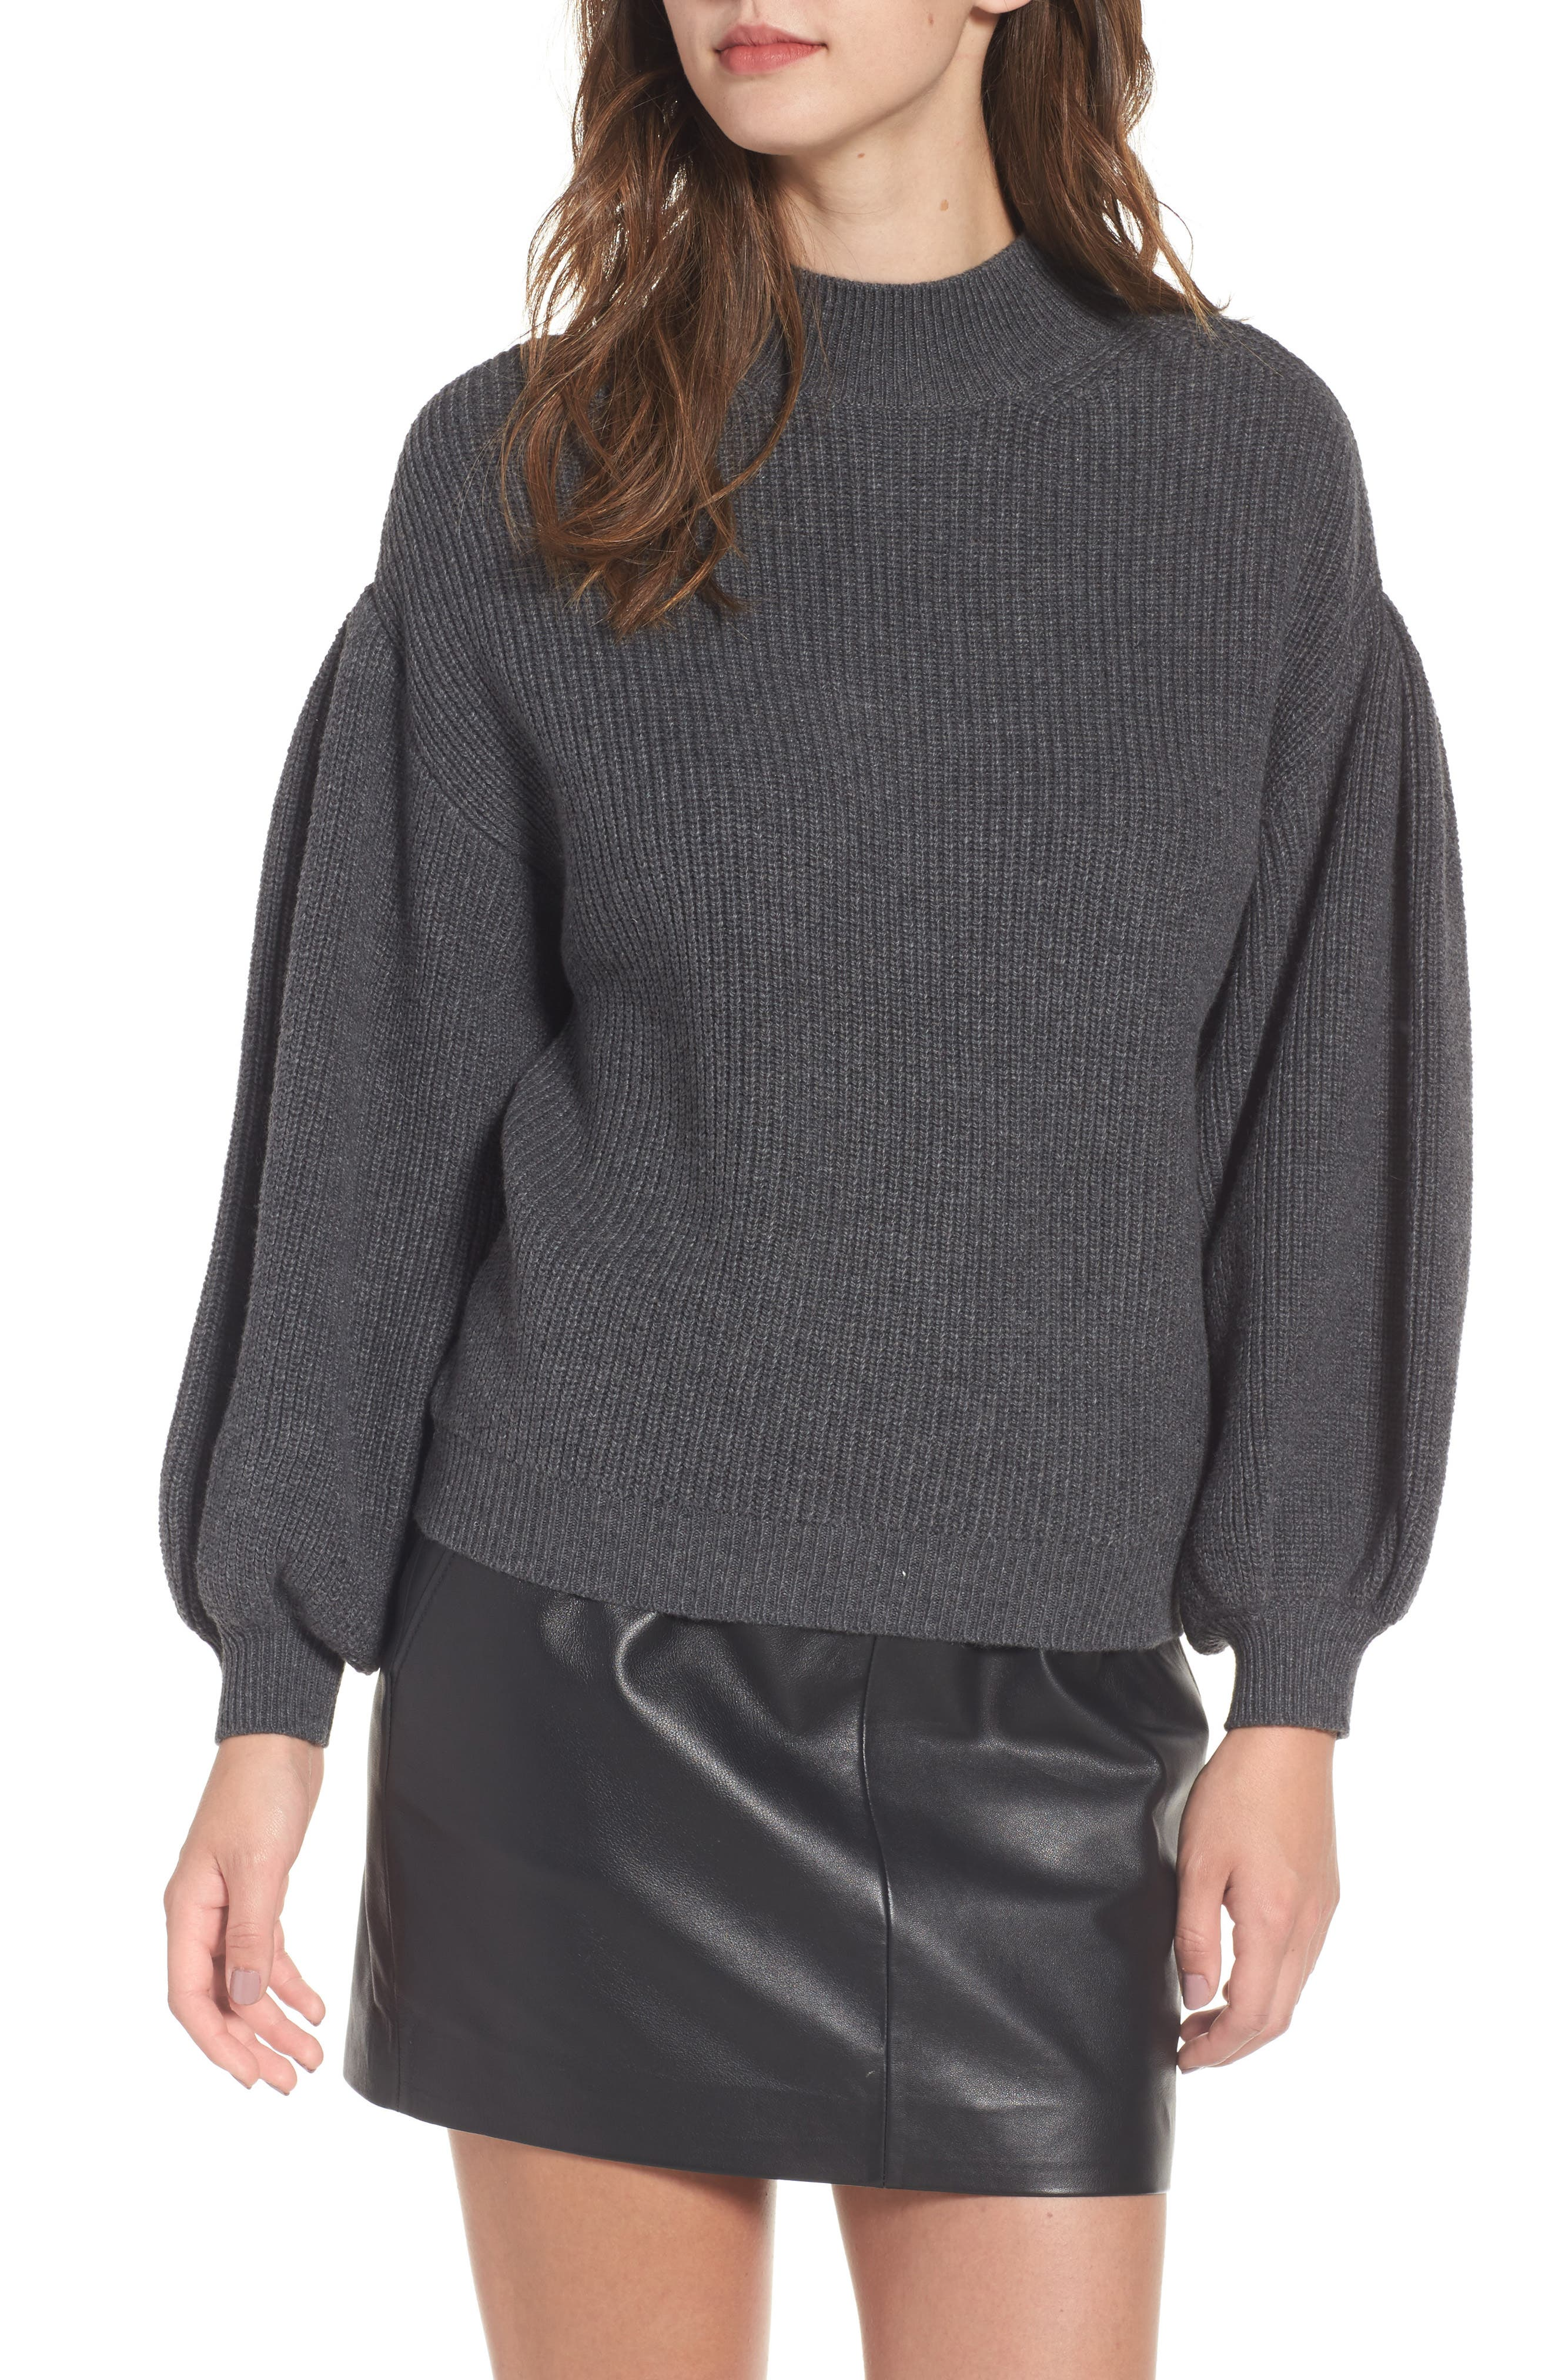 Blouson Sleeve Sweater,                             Main thumbnail 1, color,                             Grey Medium Charcoal Heather